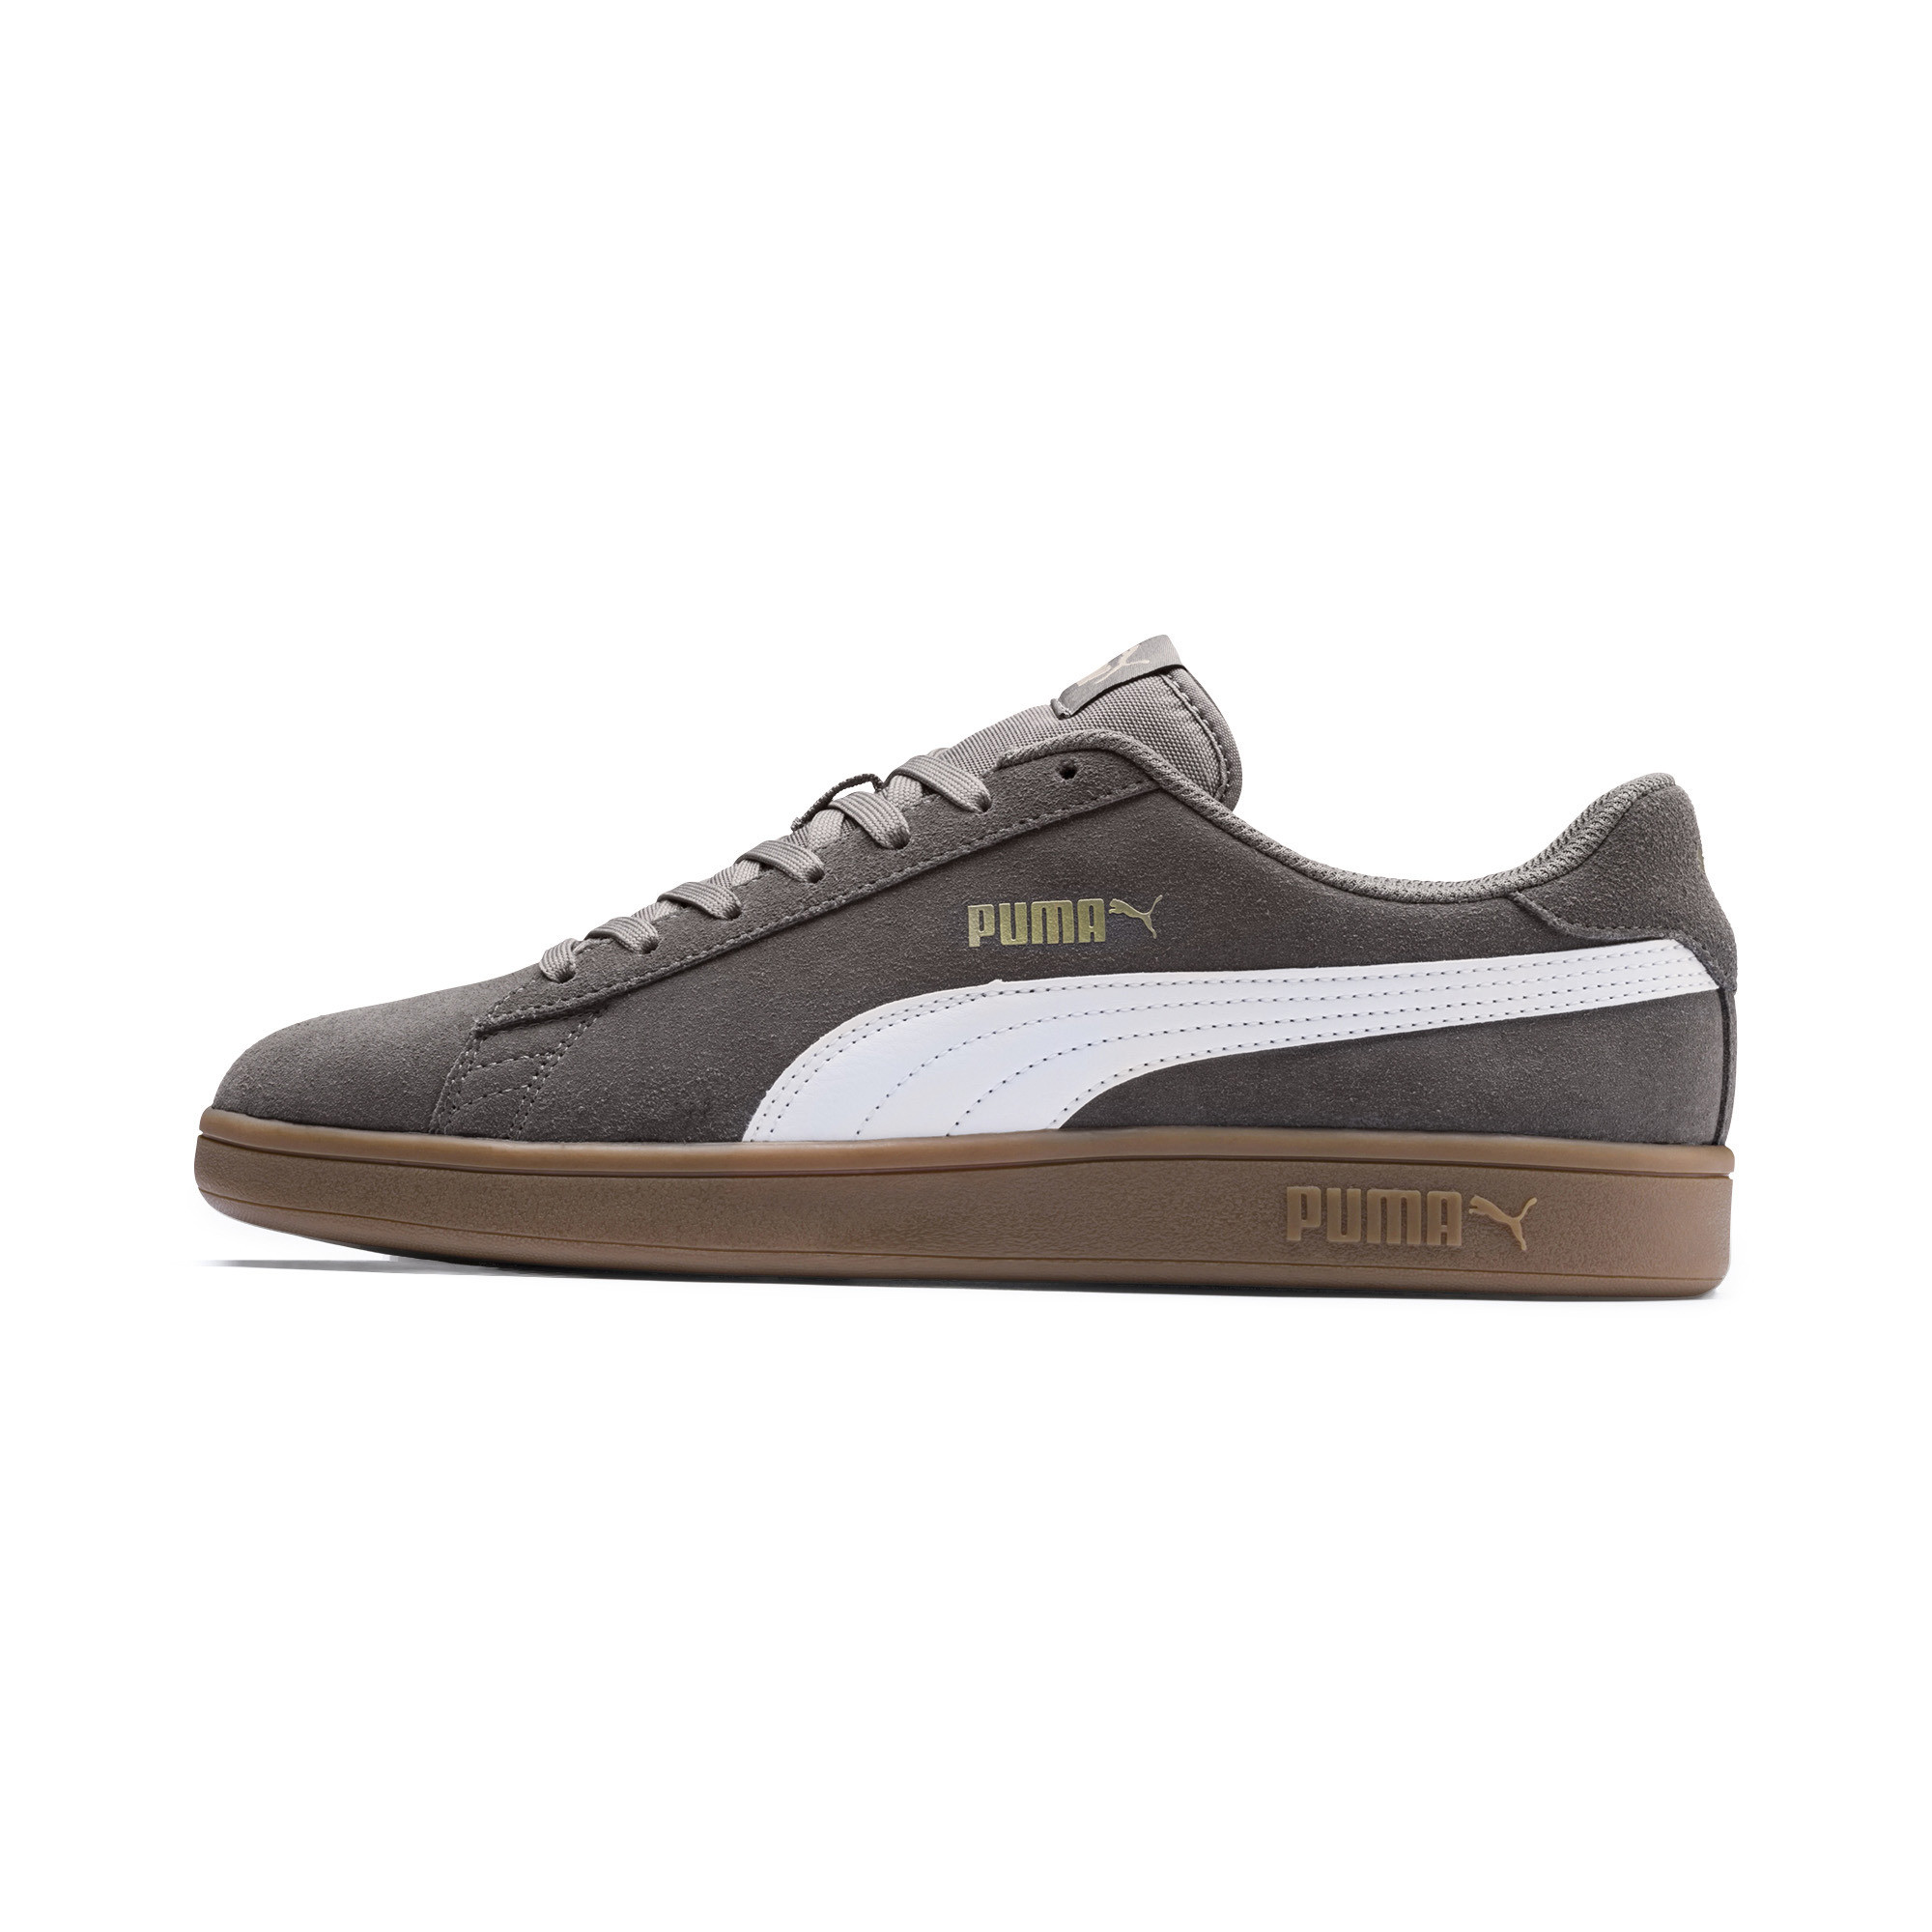 PUMA-PUMA-Smash-v2-Men-039-s-Sneakers-Men-Shoe-Basics thumbnail 42